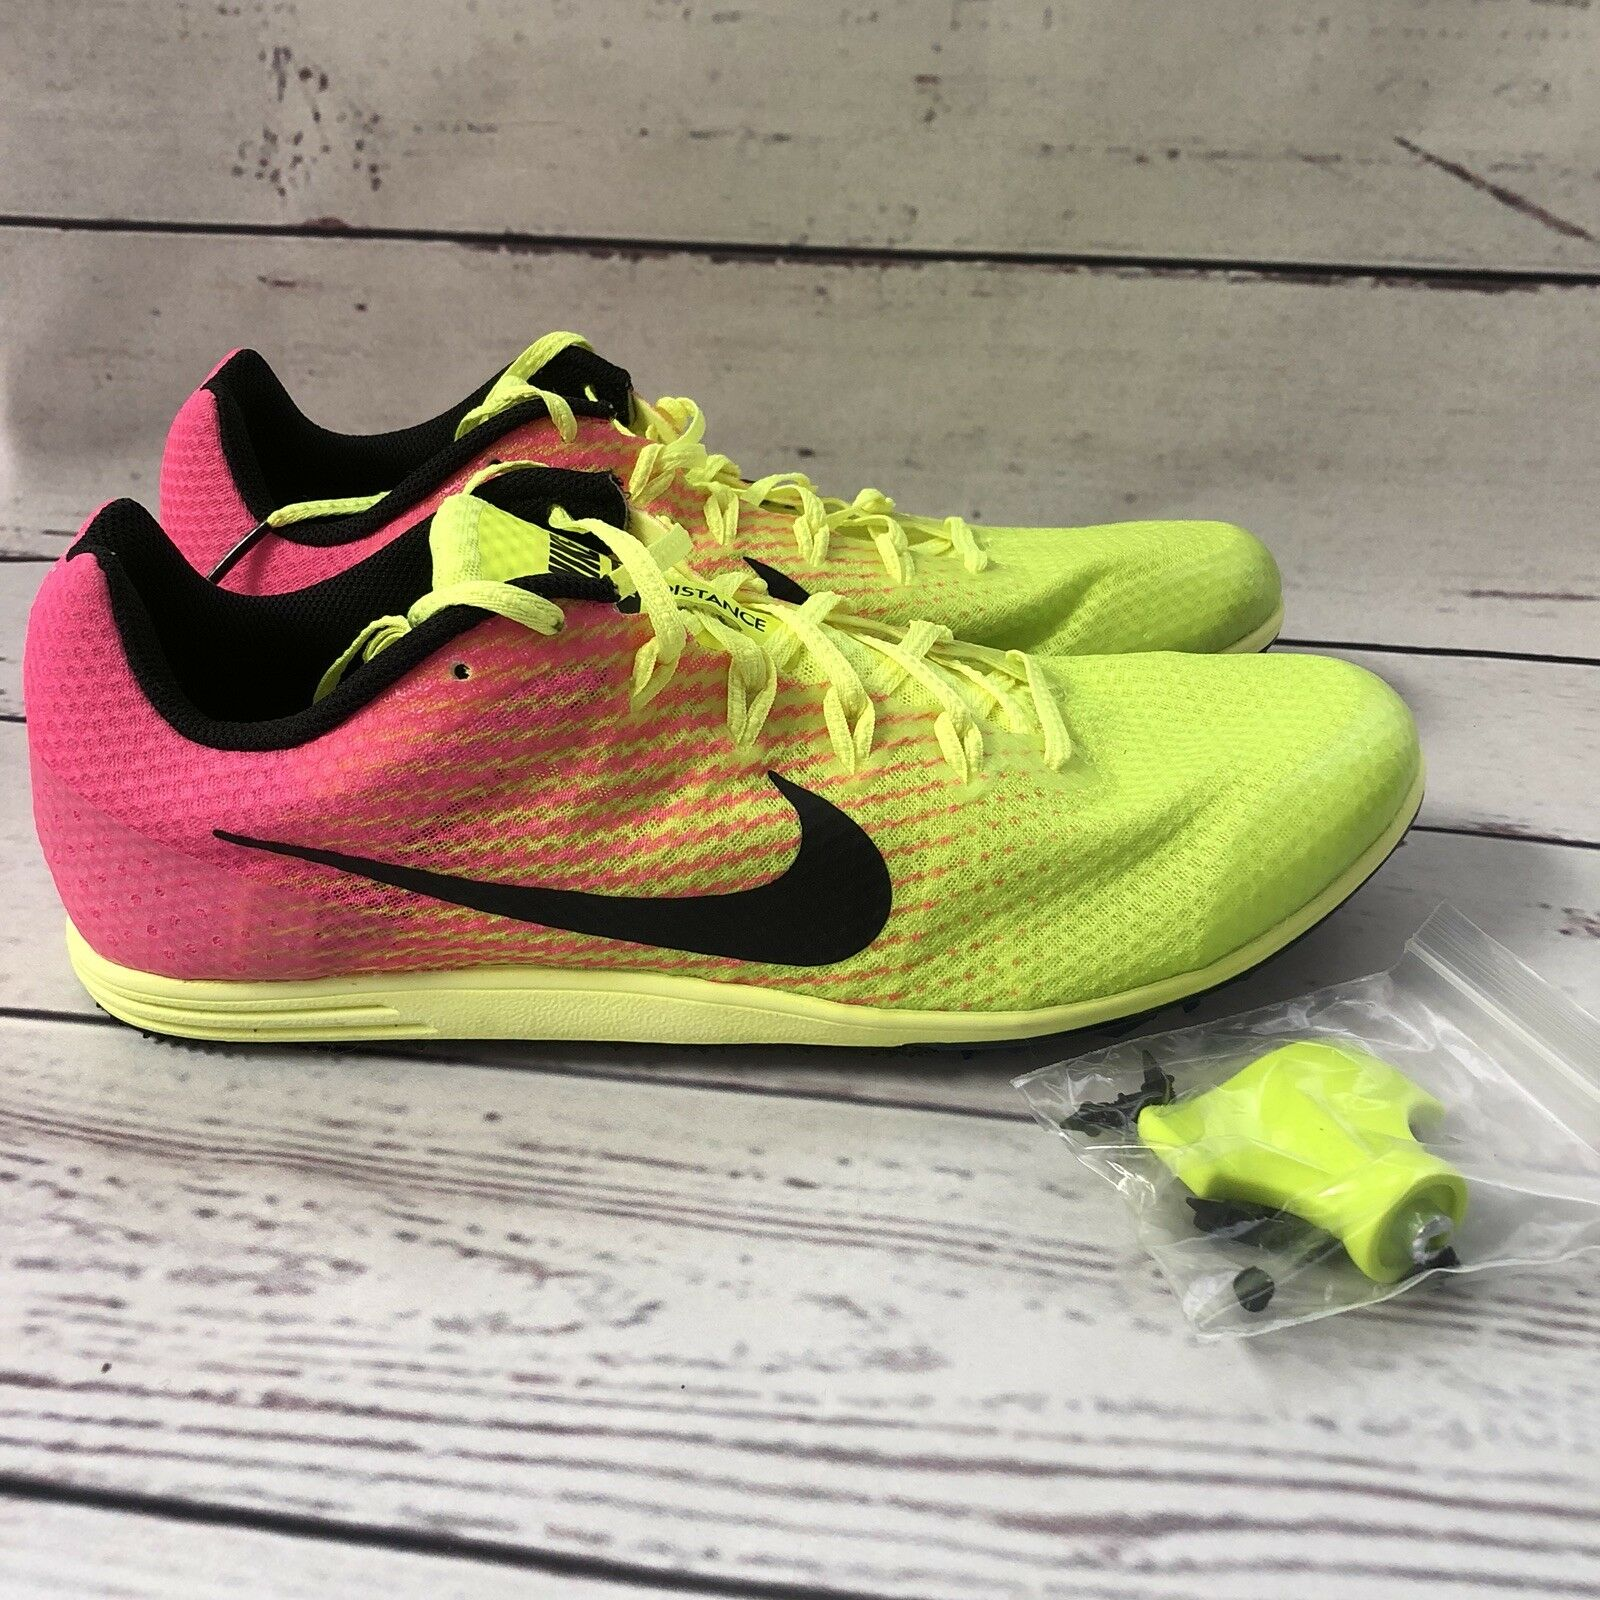 NIKE ZOOM RIVAL D 9 TRACK & AND FIELD Price reduction New shoes for men and women, limited time discount